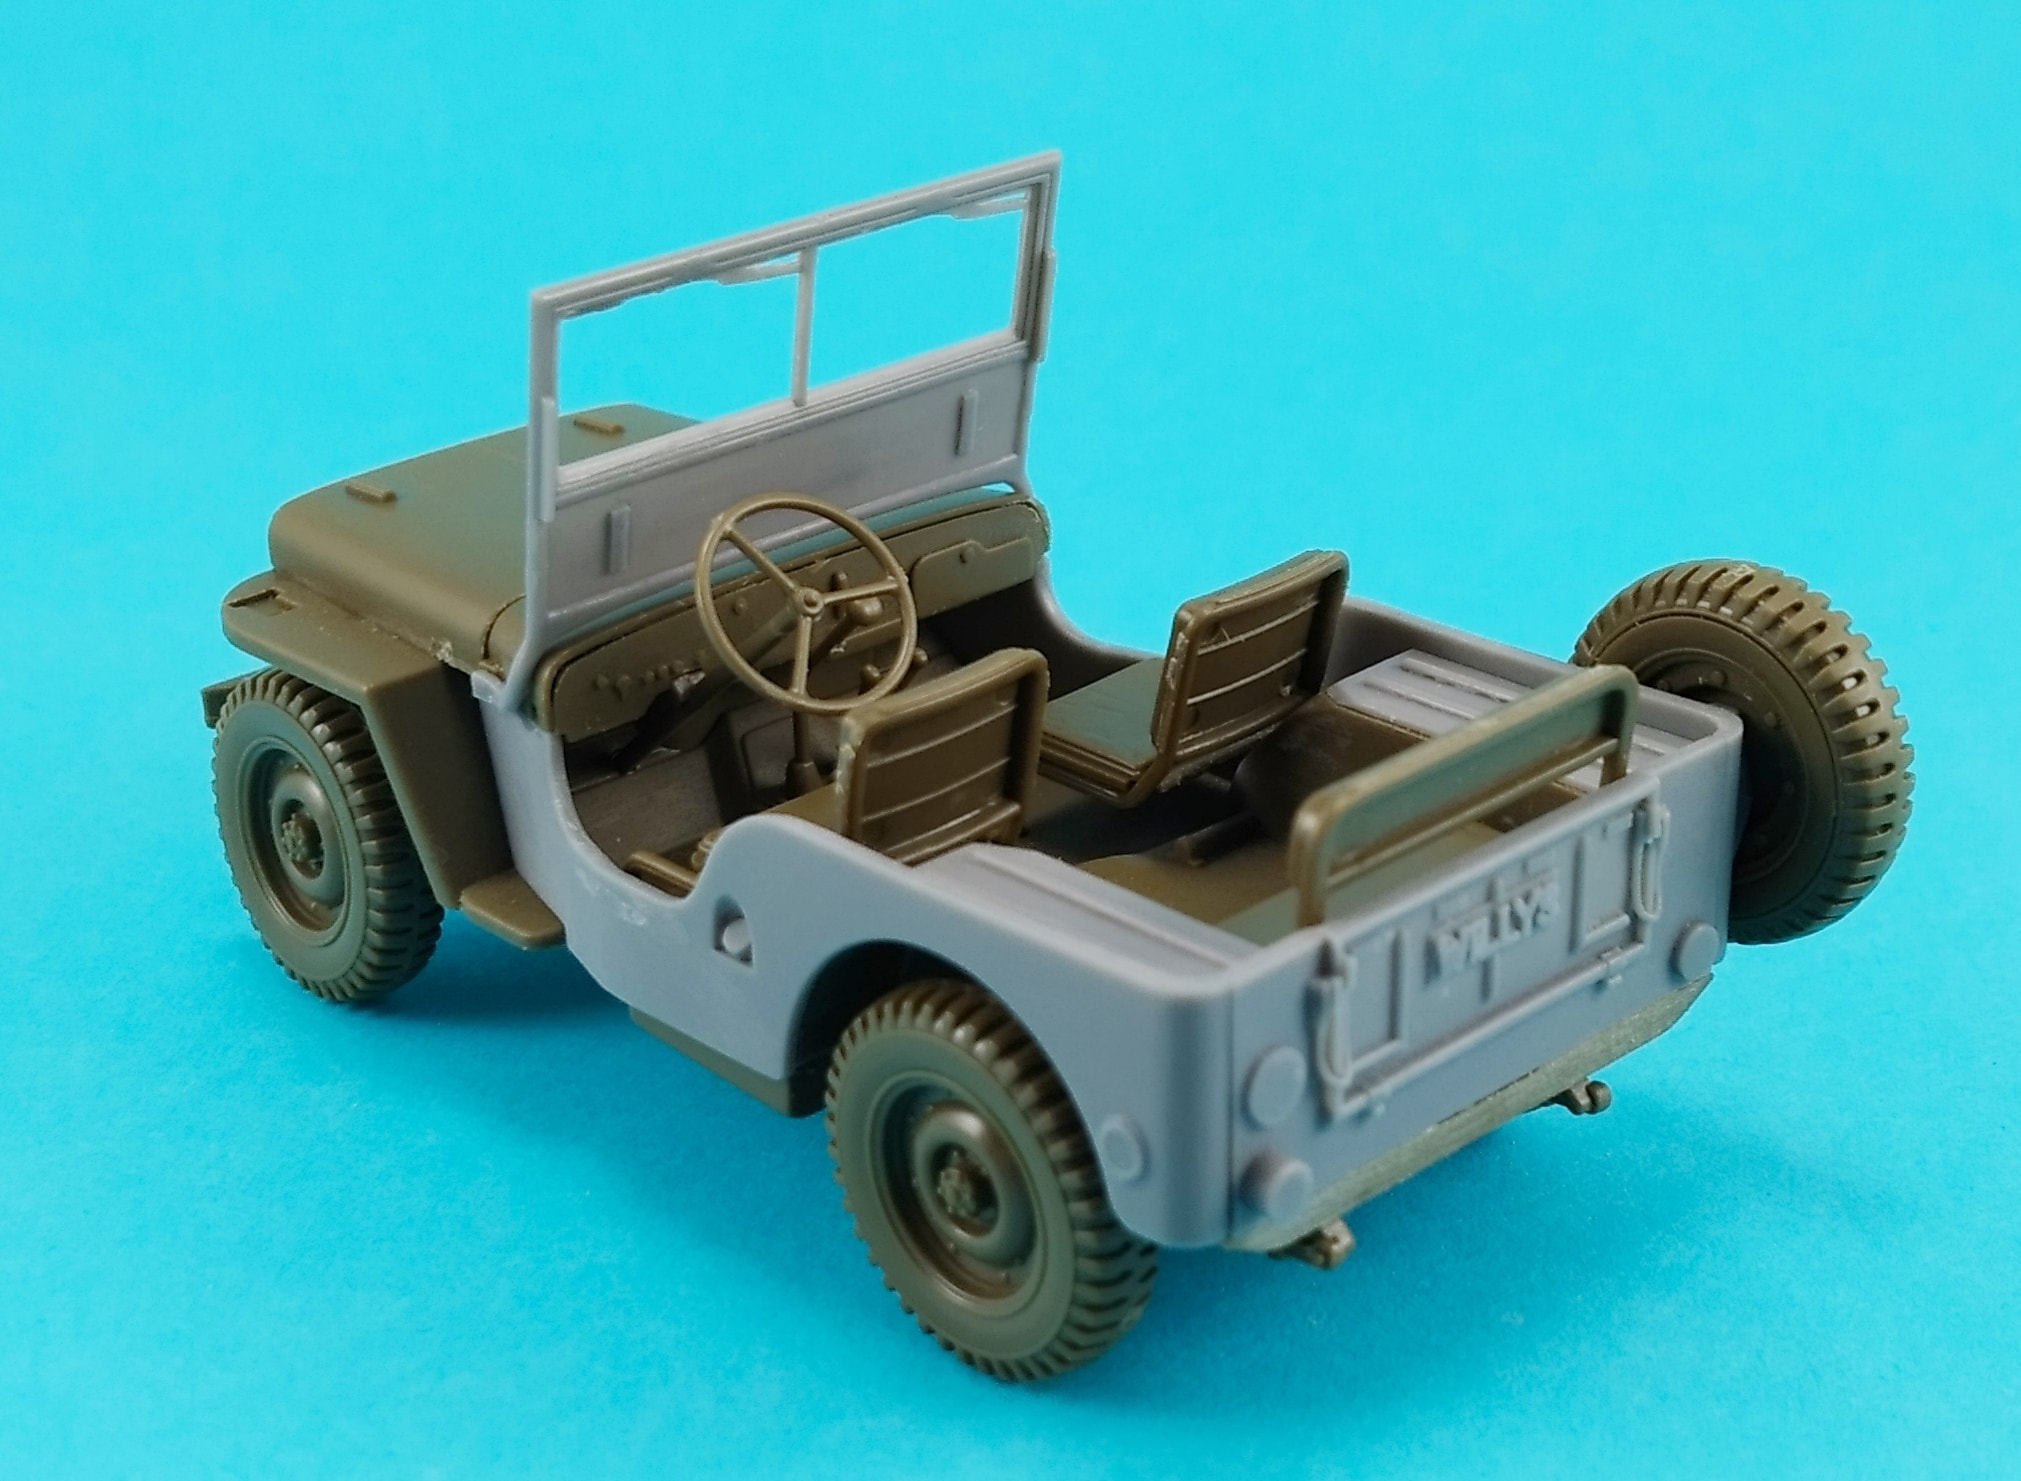 48012 - conversion of Willys CJ2A 1/48